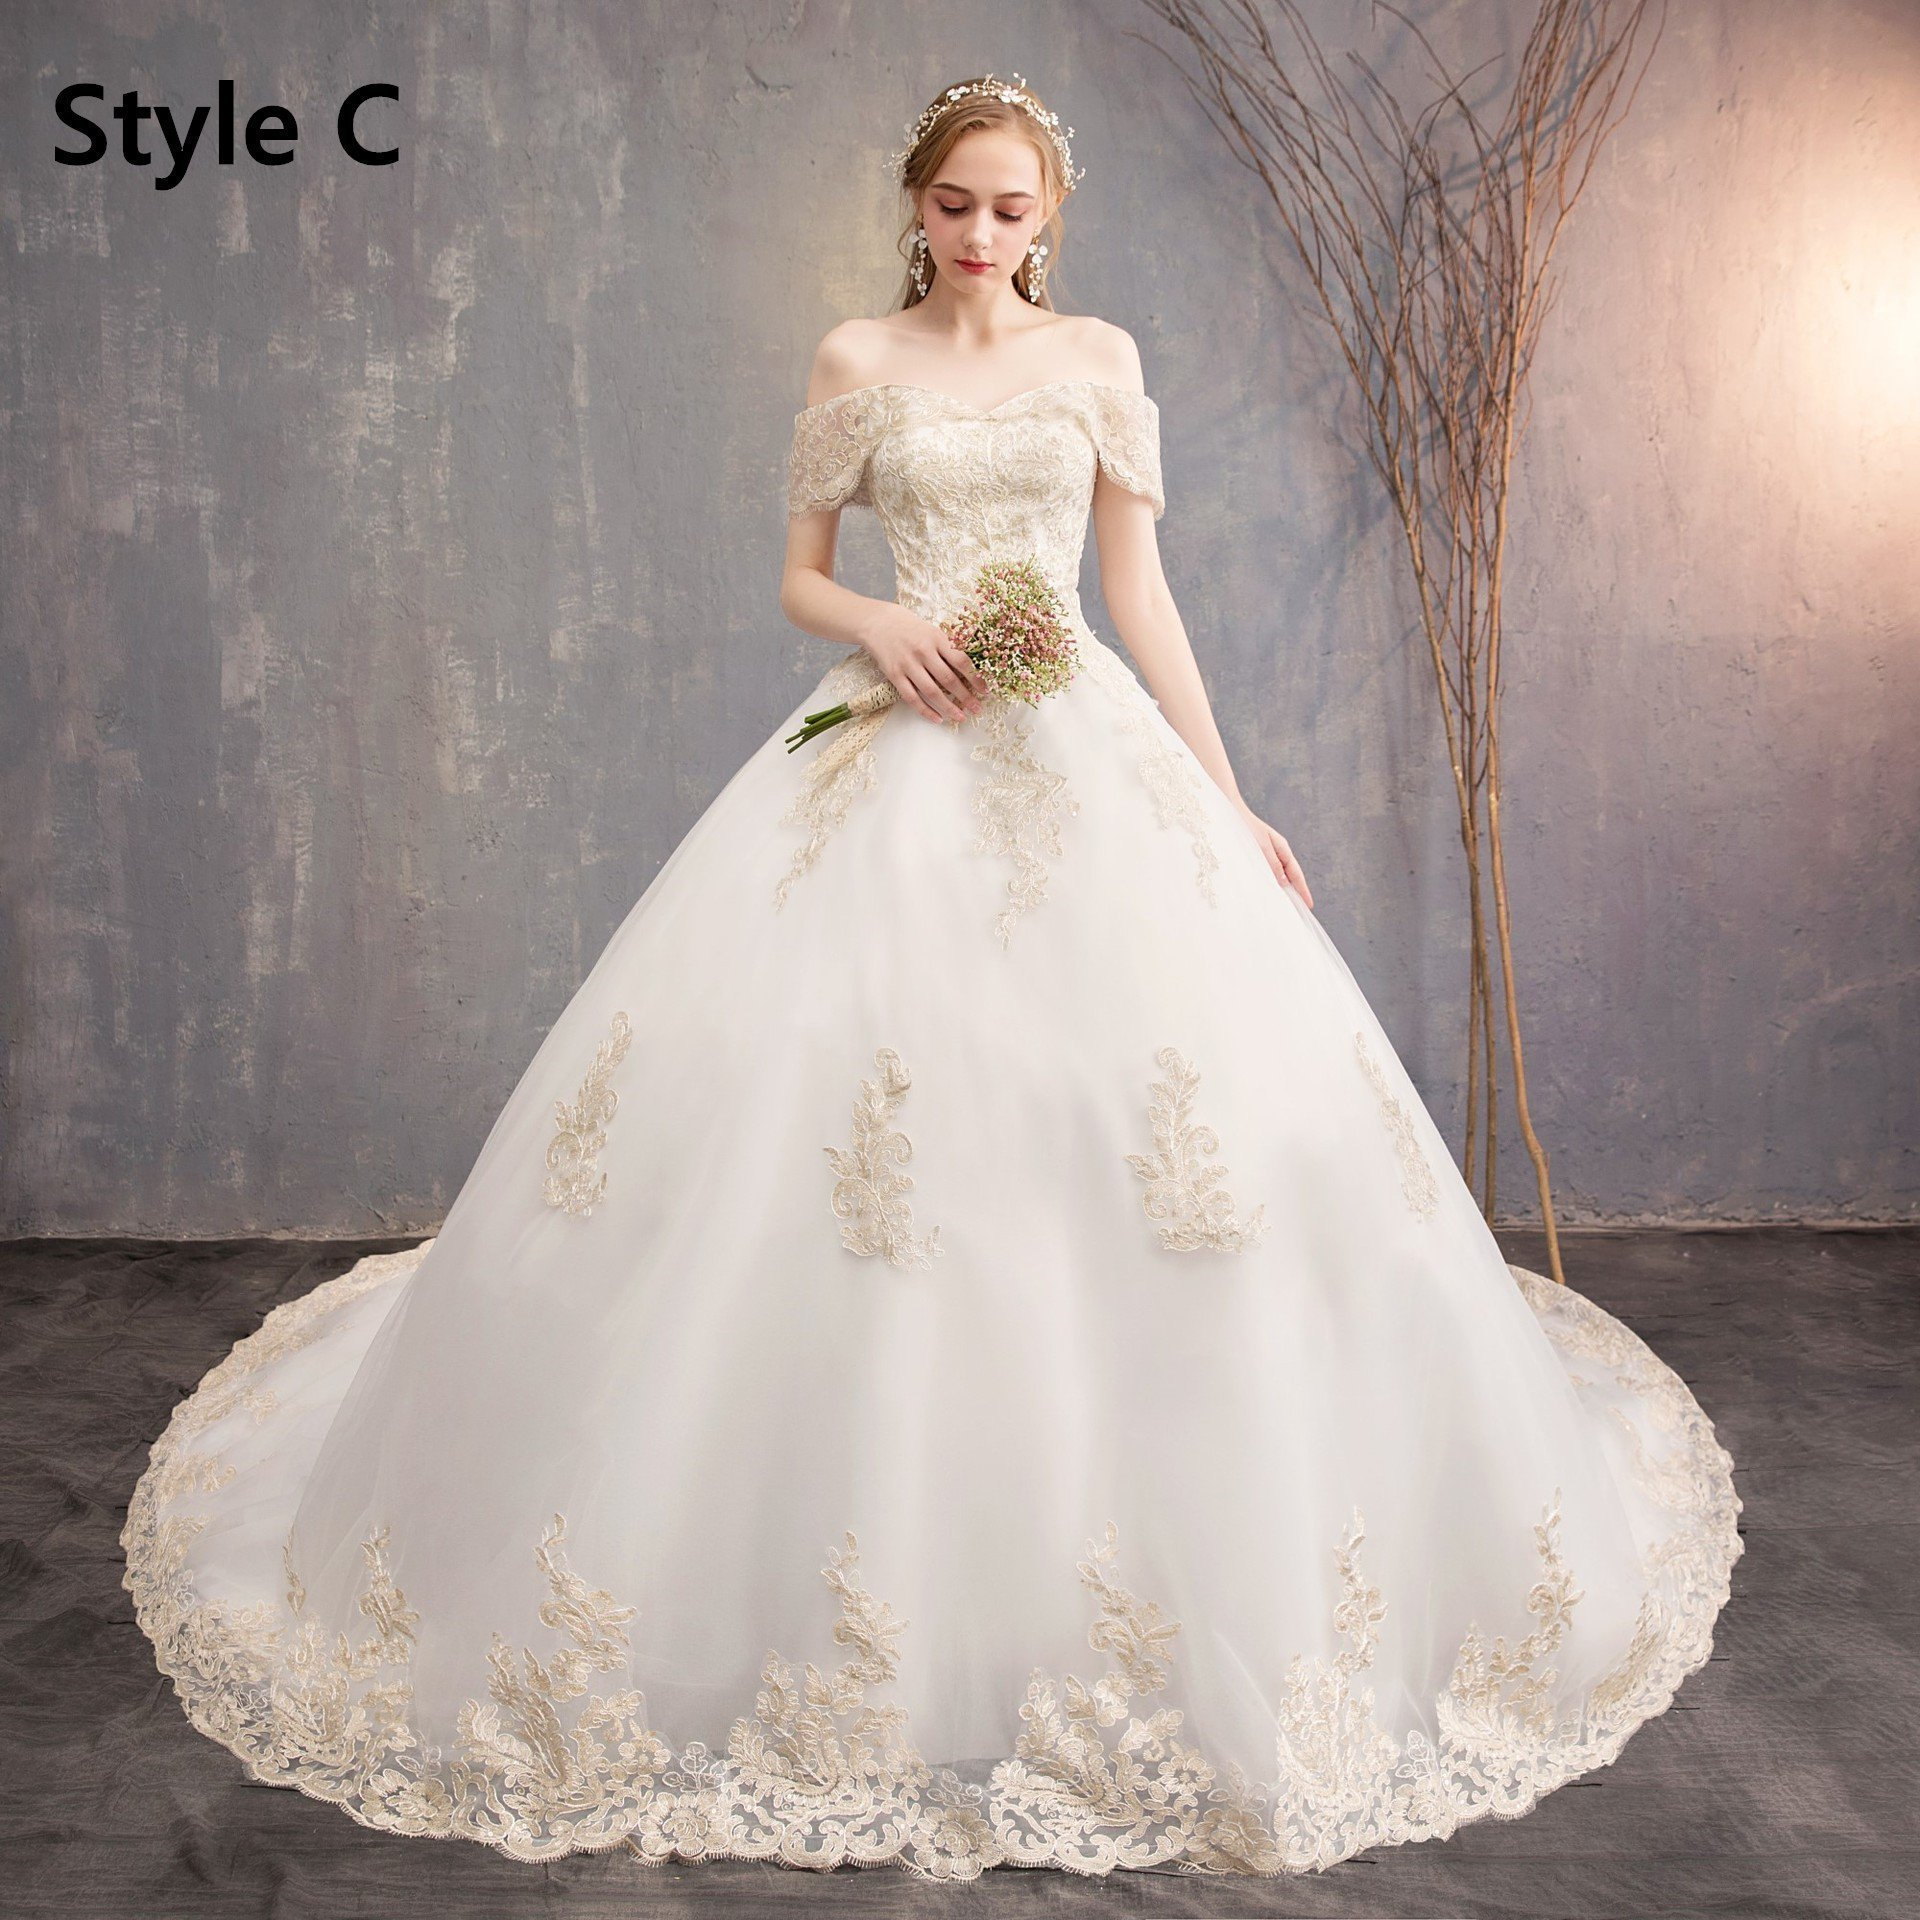 Best Wedding Dresses Lace Dresses Dresses To Wear To A September Wedding Black And Gold Dress Wedding Guest Attire Female Pants Pink Floral Dress Baju Kurung Moden Lace Wedding Indo Western